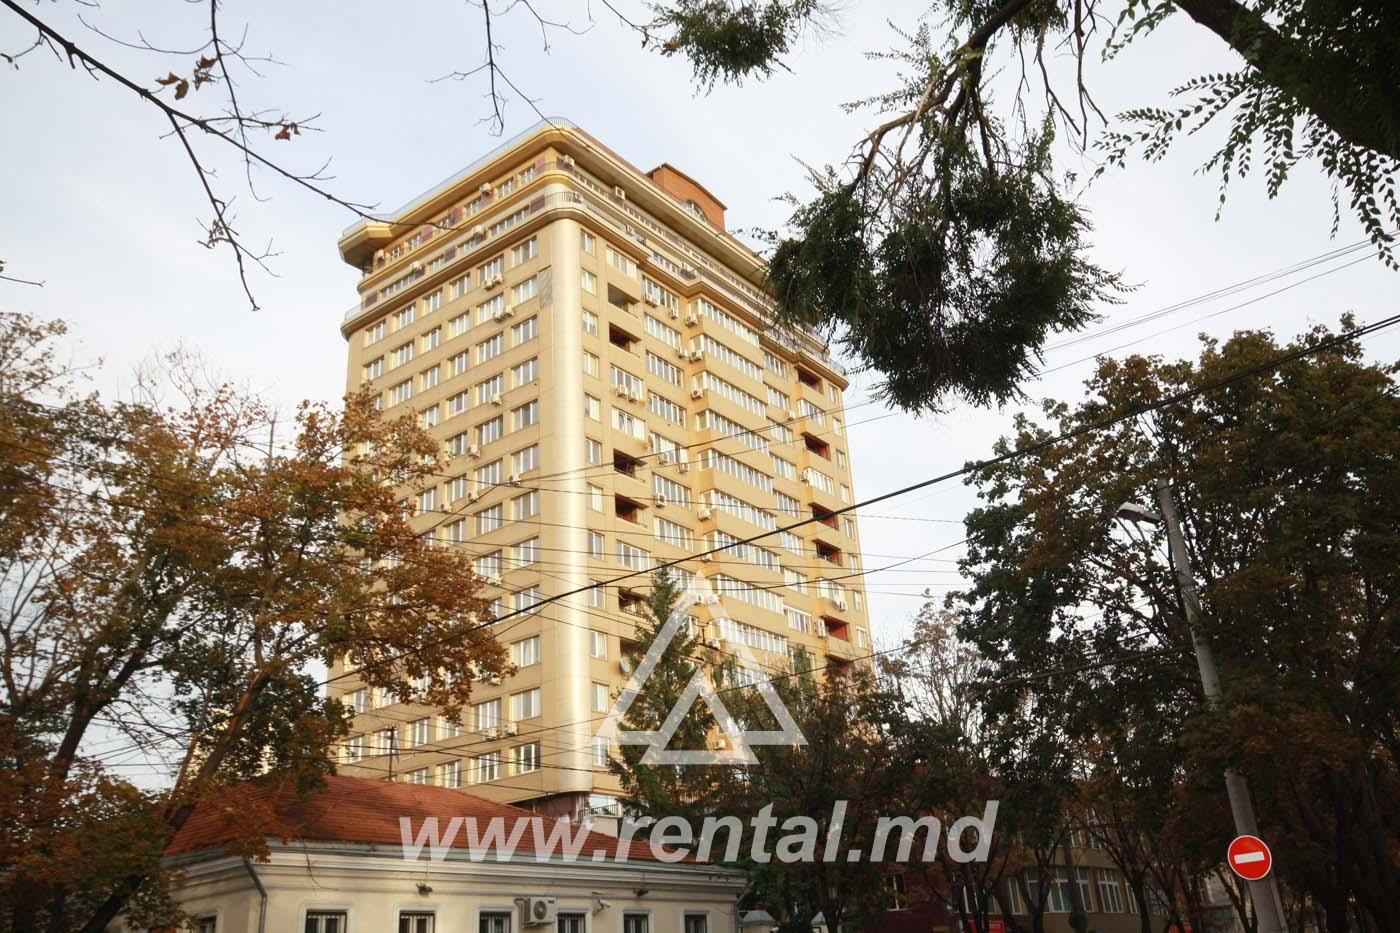 Rental apartment 4 rooms in the city center